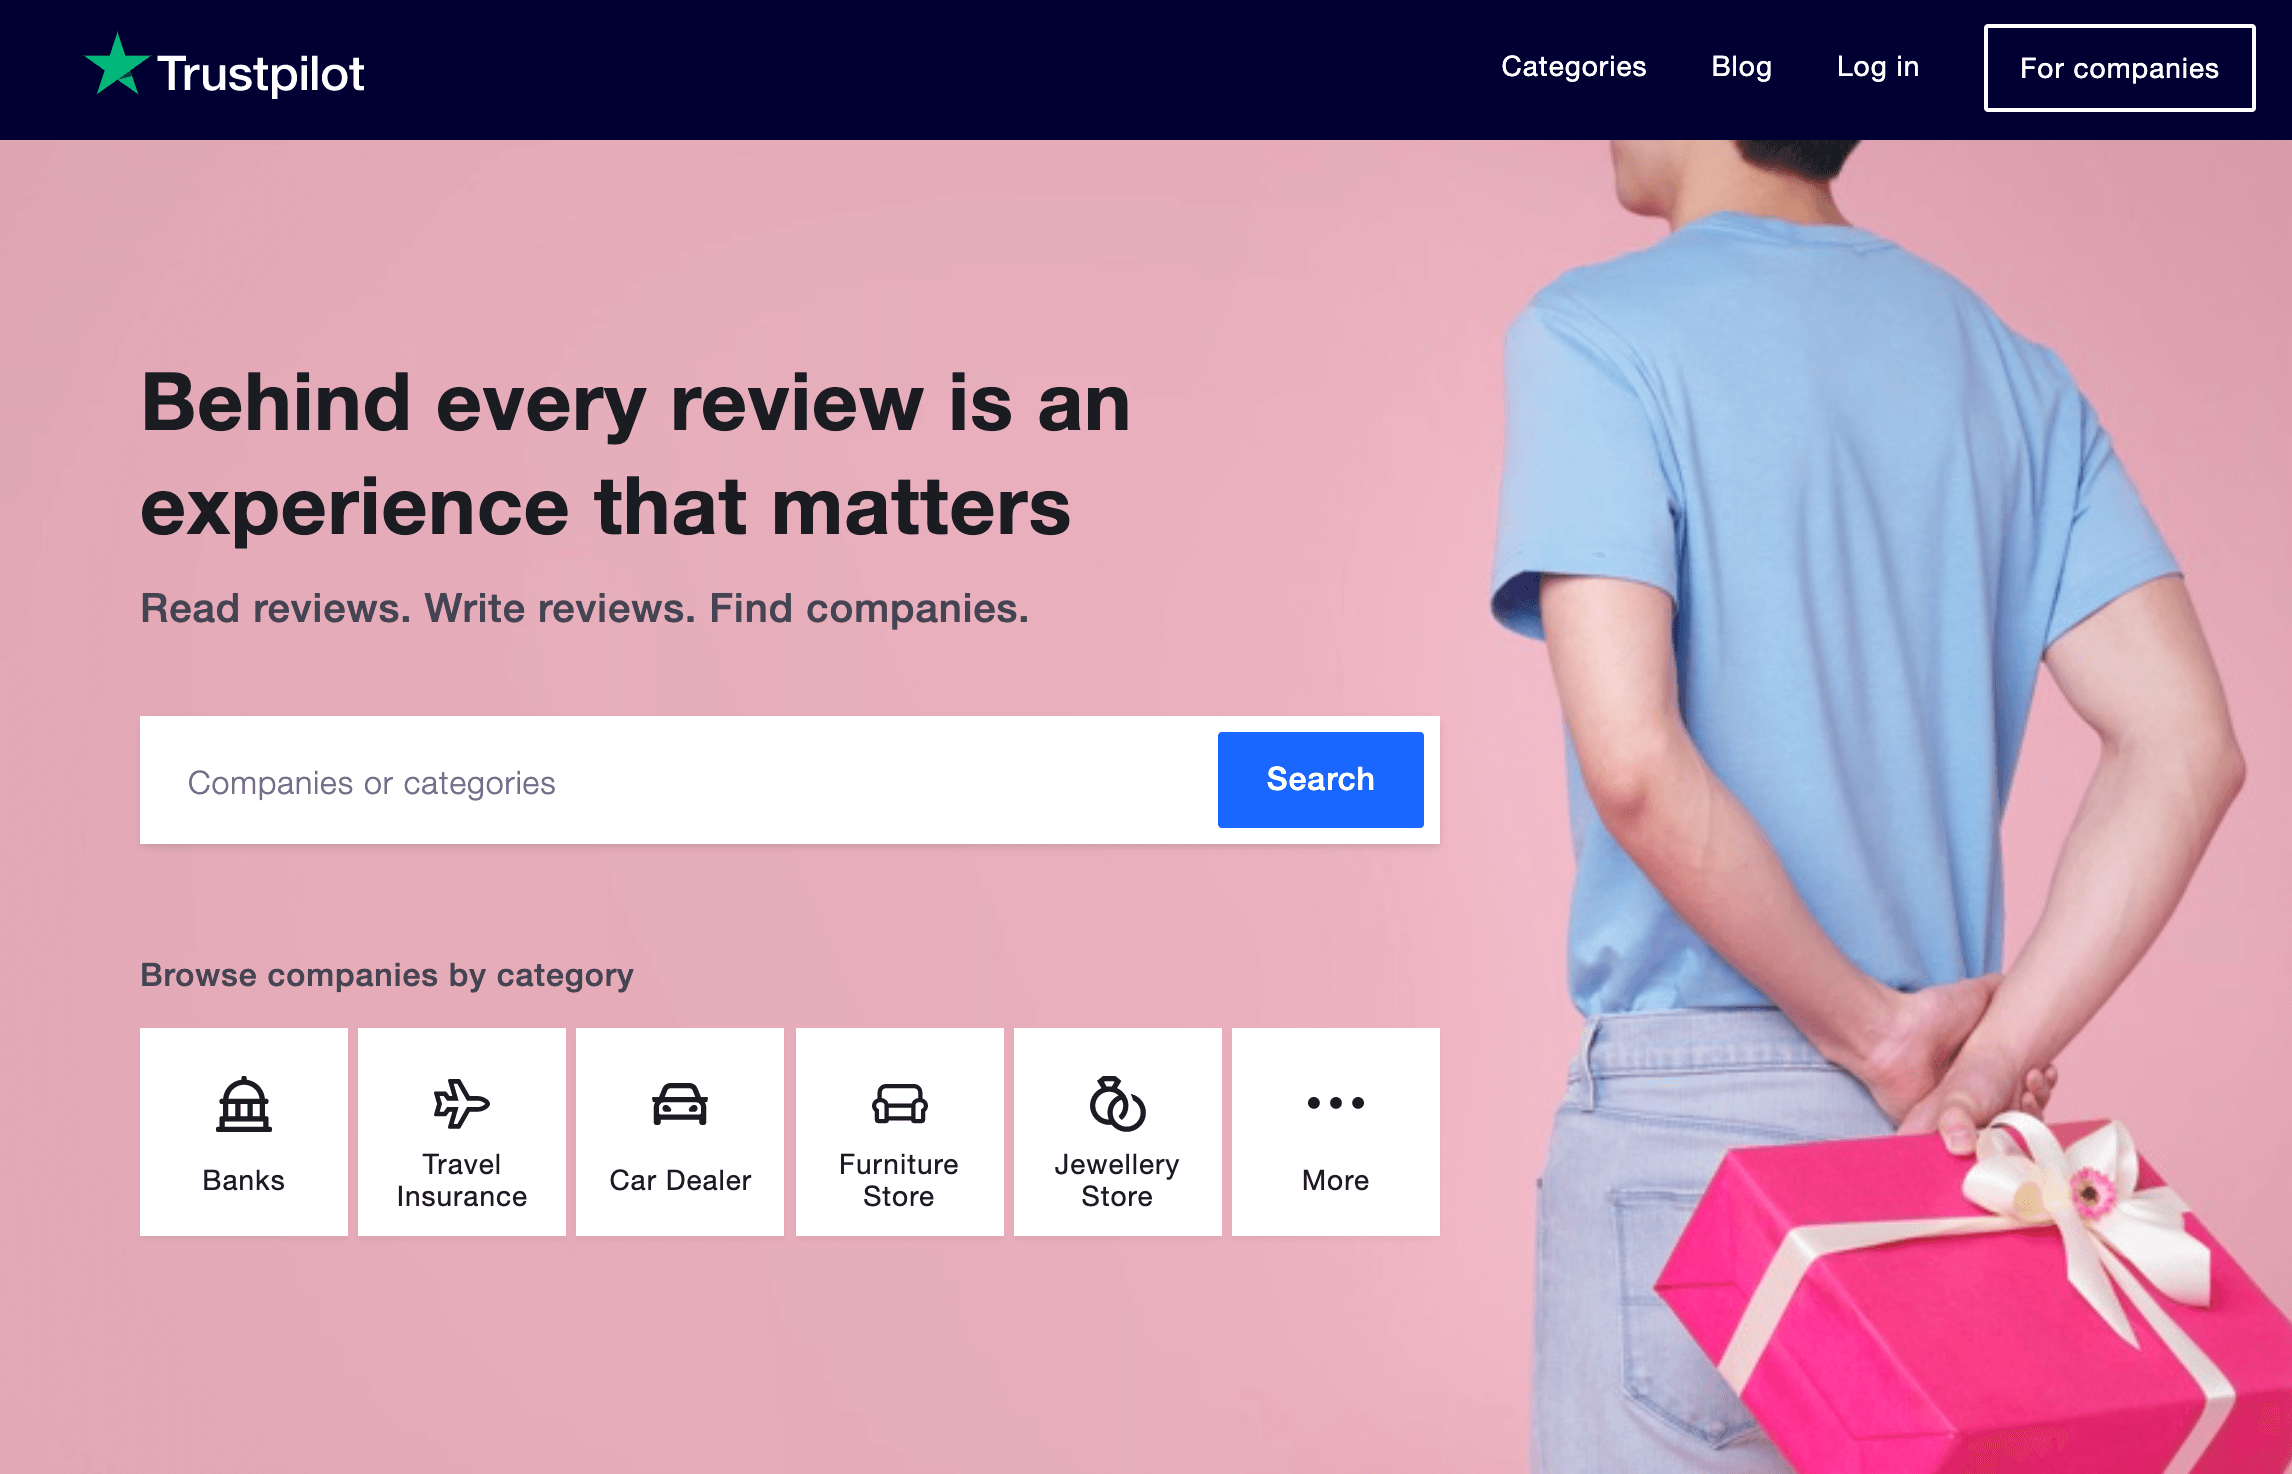 The Trustpilot home page.